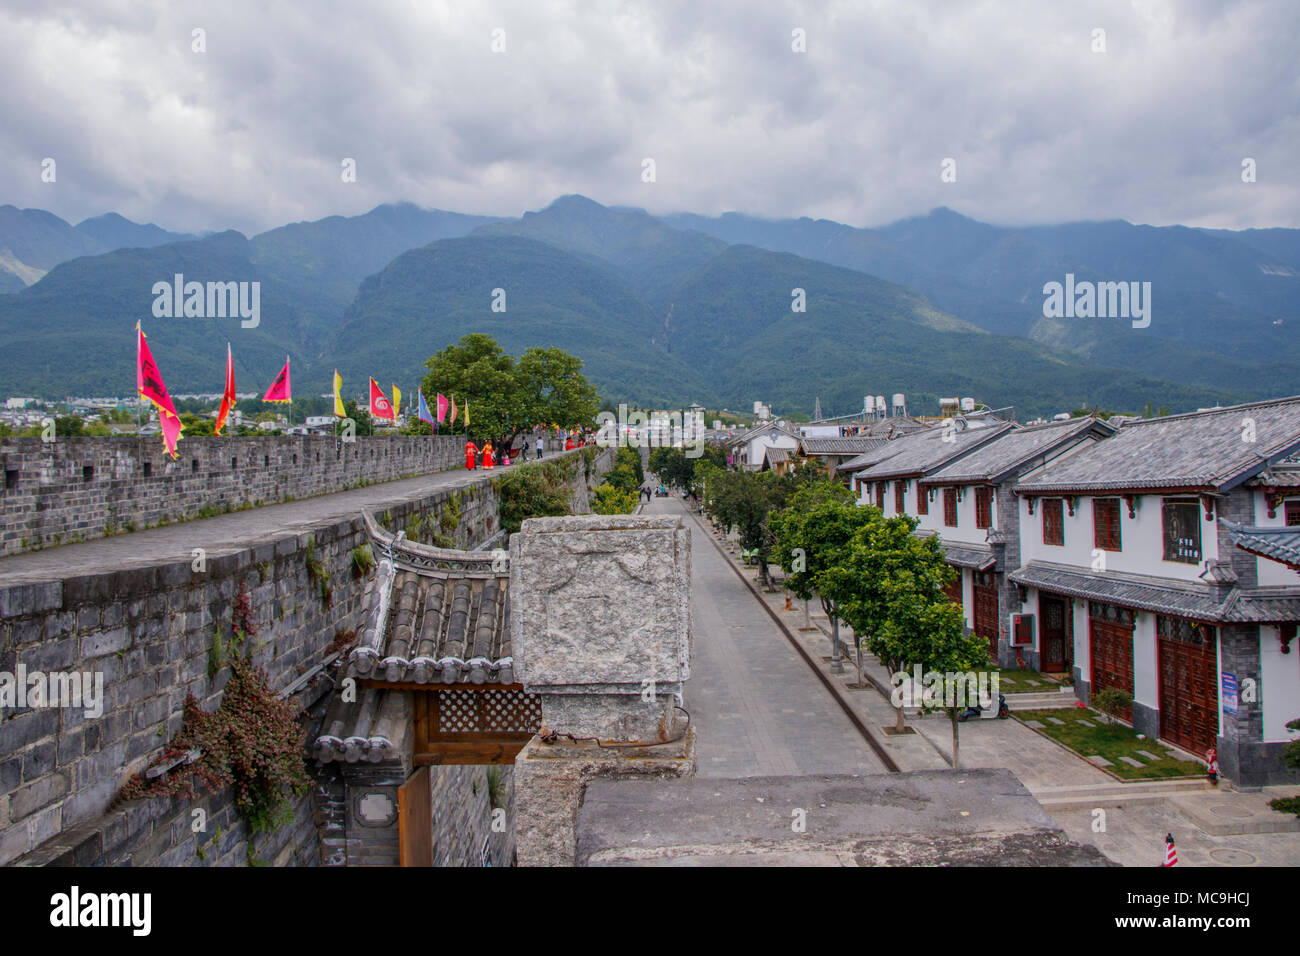 Ancient Chinese Architecture House Building Stone Brick Road